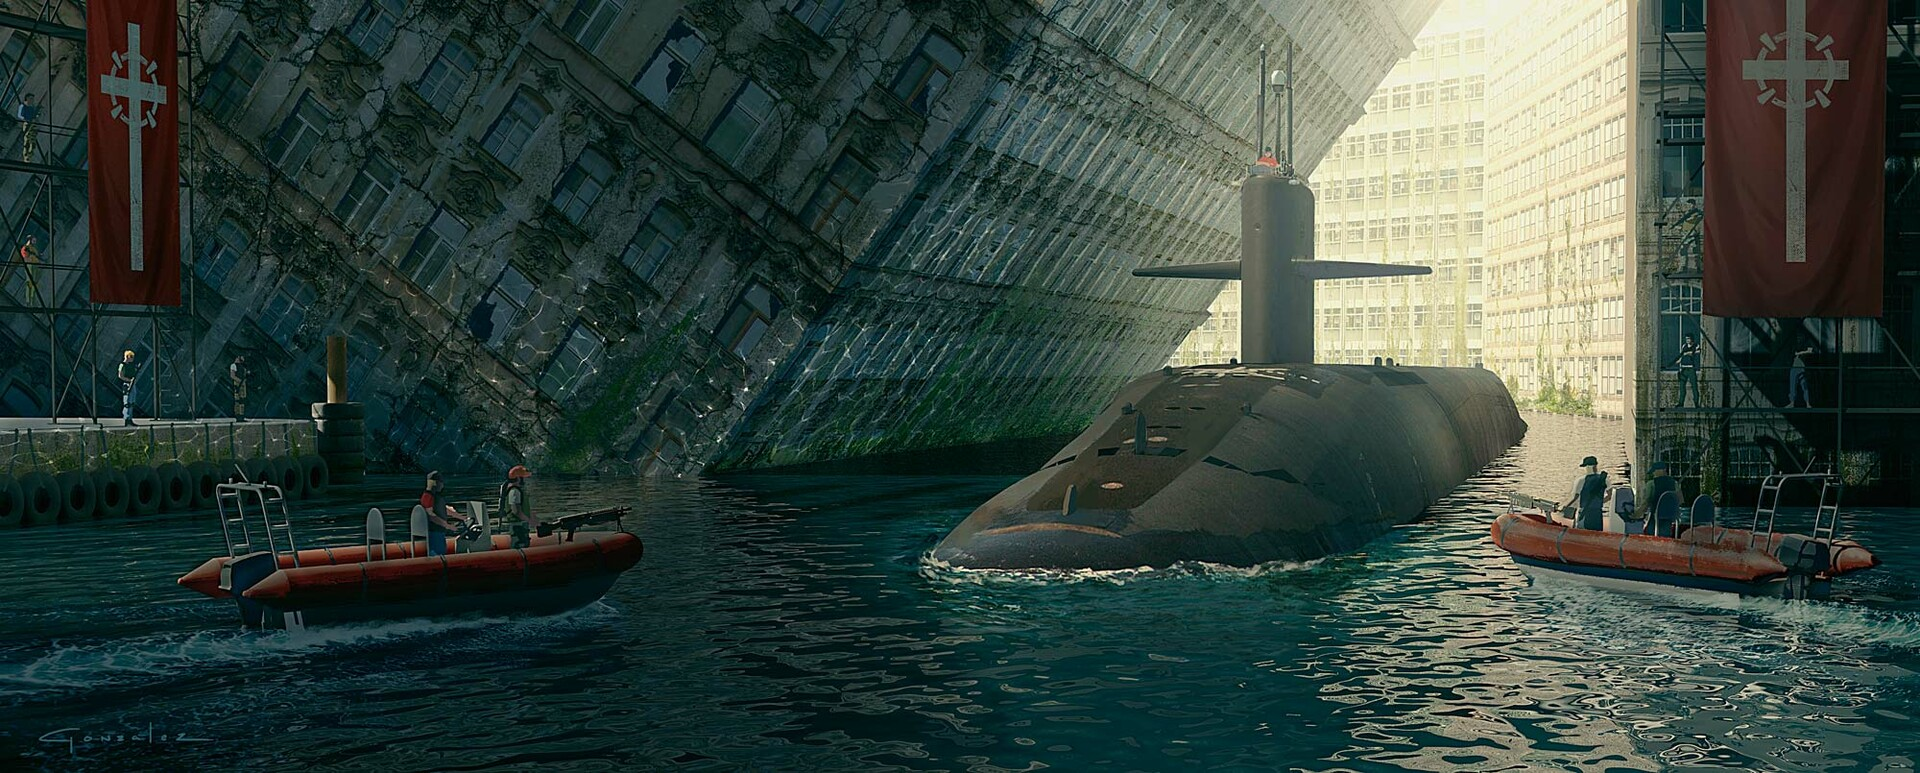 A submarine enters the base for resupply and rearming. The crew was on a recon mission.